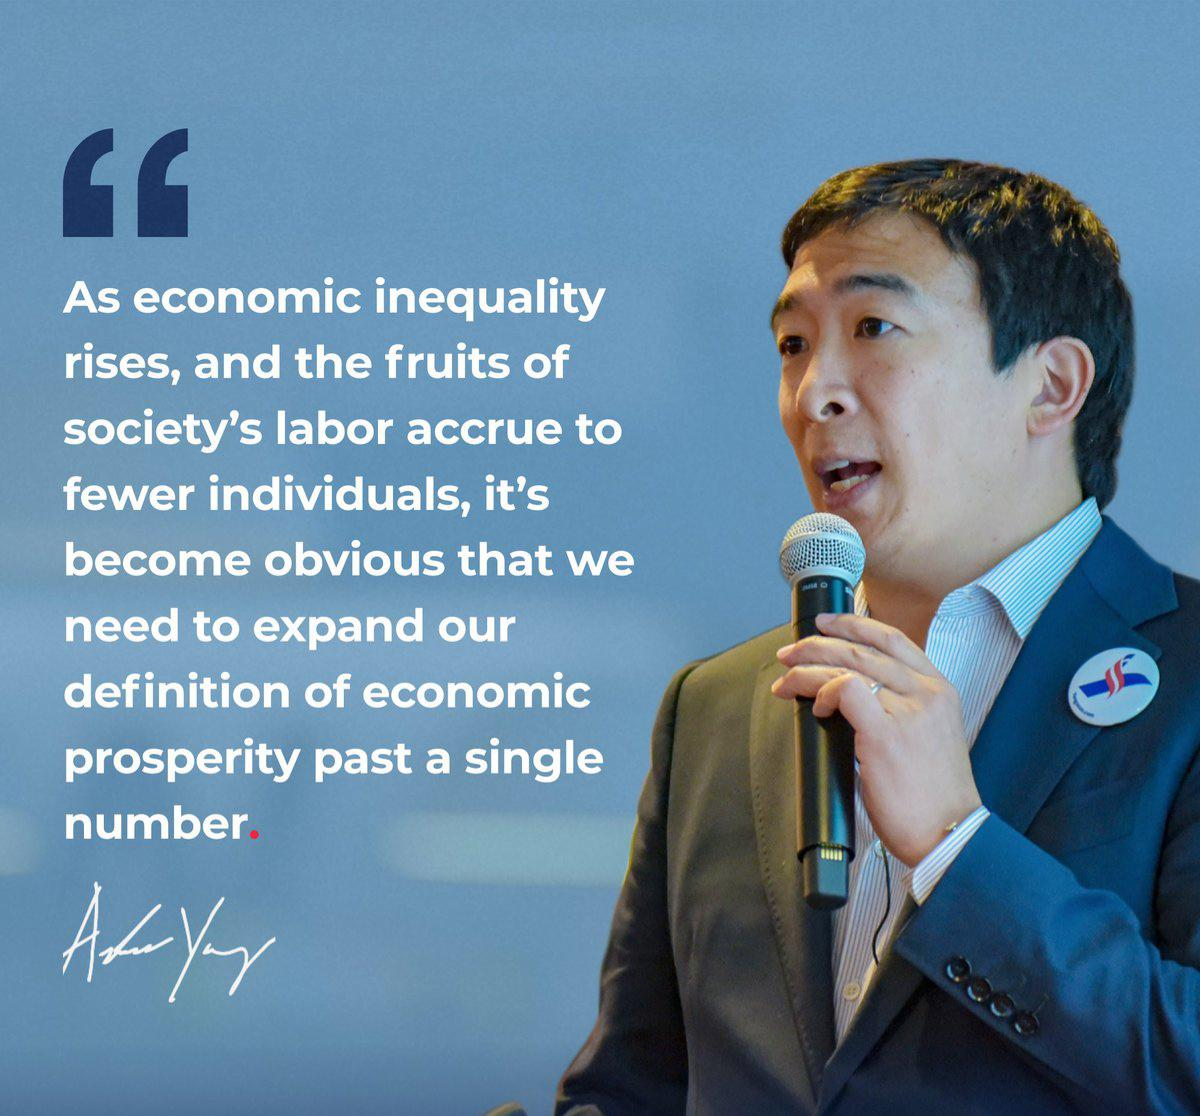 """It's become obvious that we need to expand our definition of economic prosperity past a single number."" -Andrew Yang [1200 x 1200]"